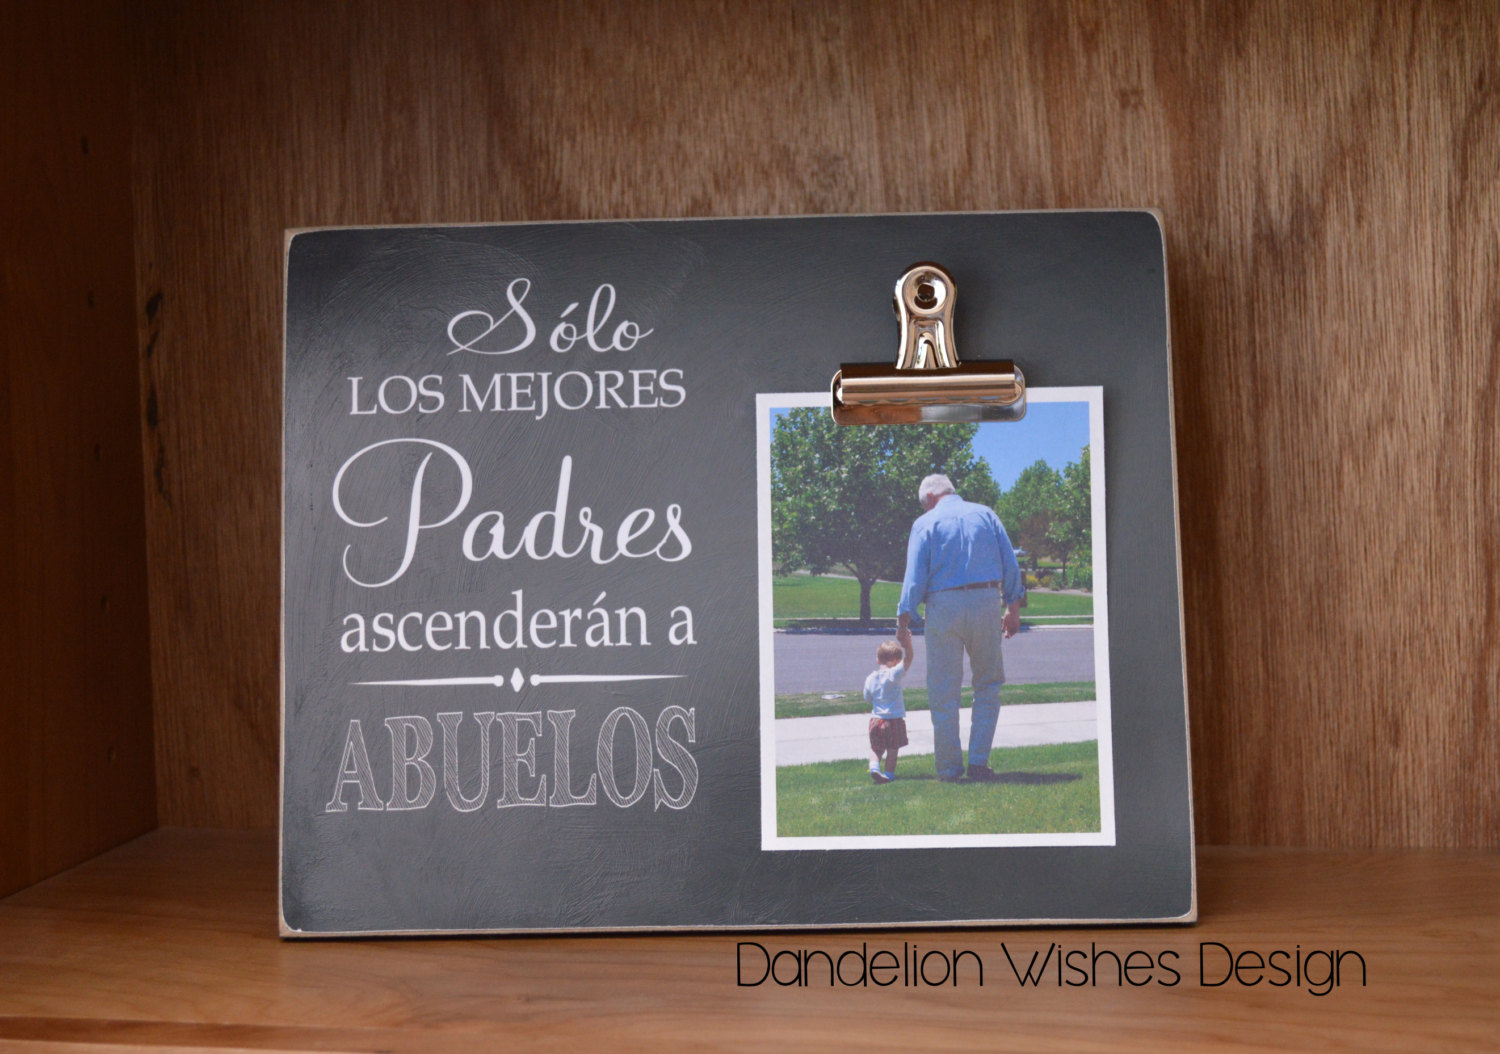 Wonderful Solo Los Mejores Padres Ascenderan by Dandelion Wishes Design on CF99